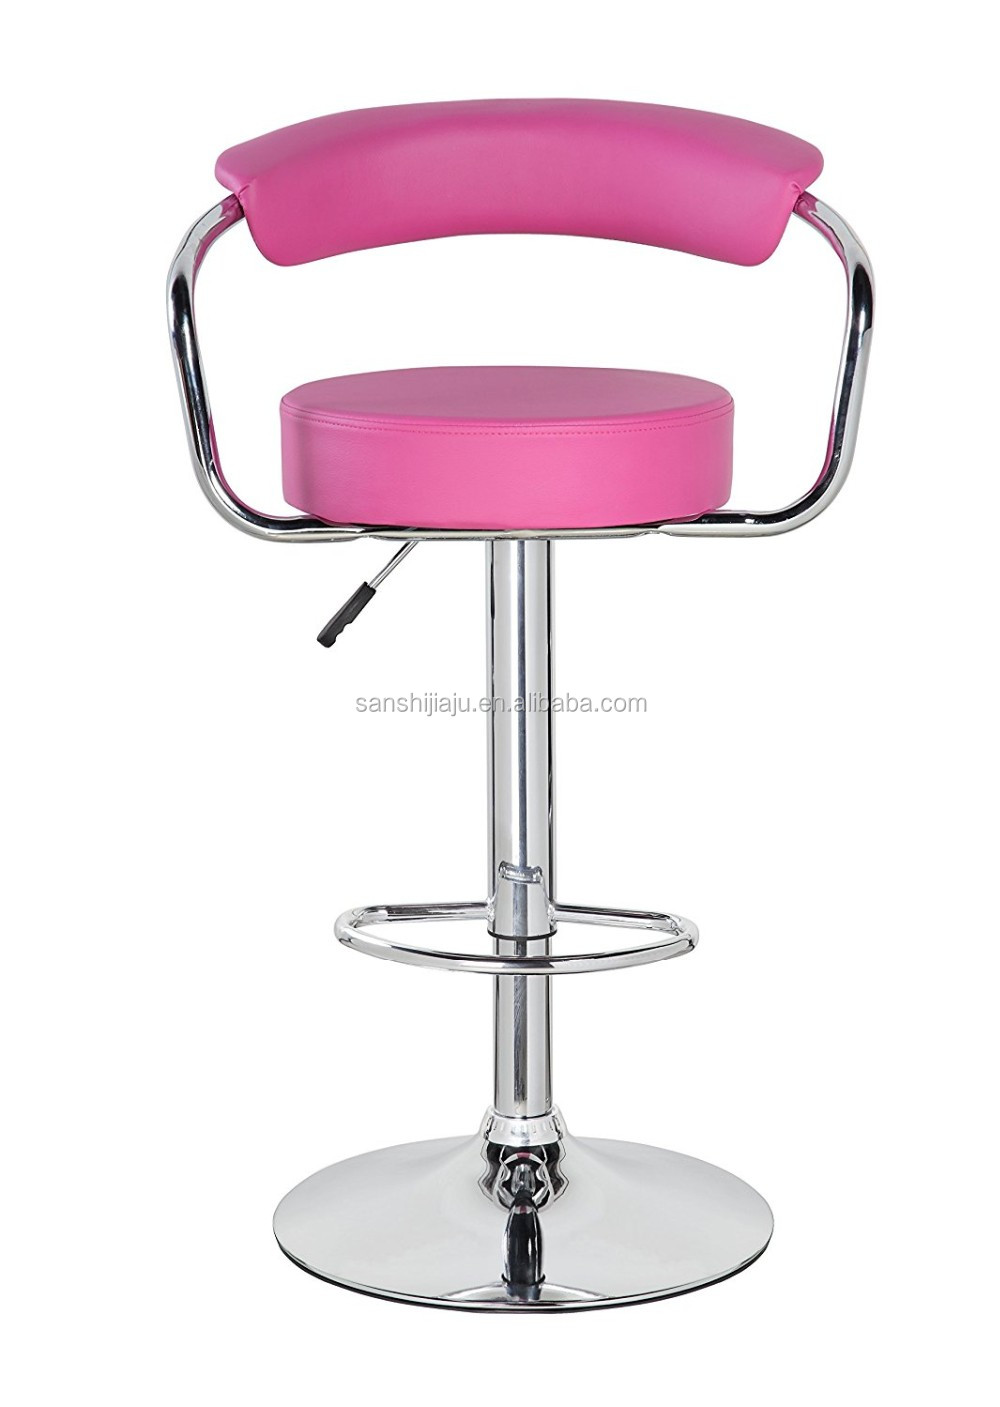 High Quality Big Lots Bar Stools For Sale Used Buy High